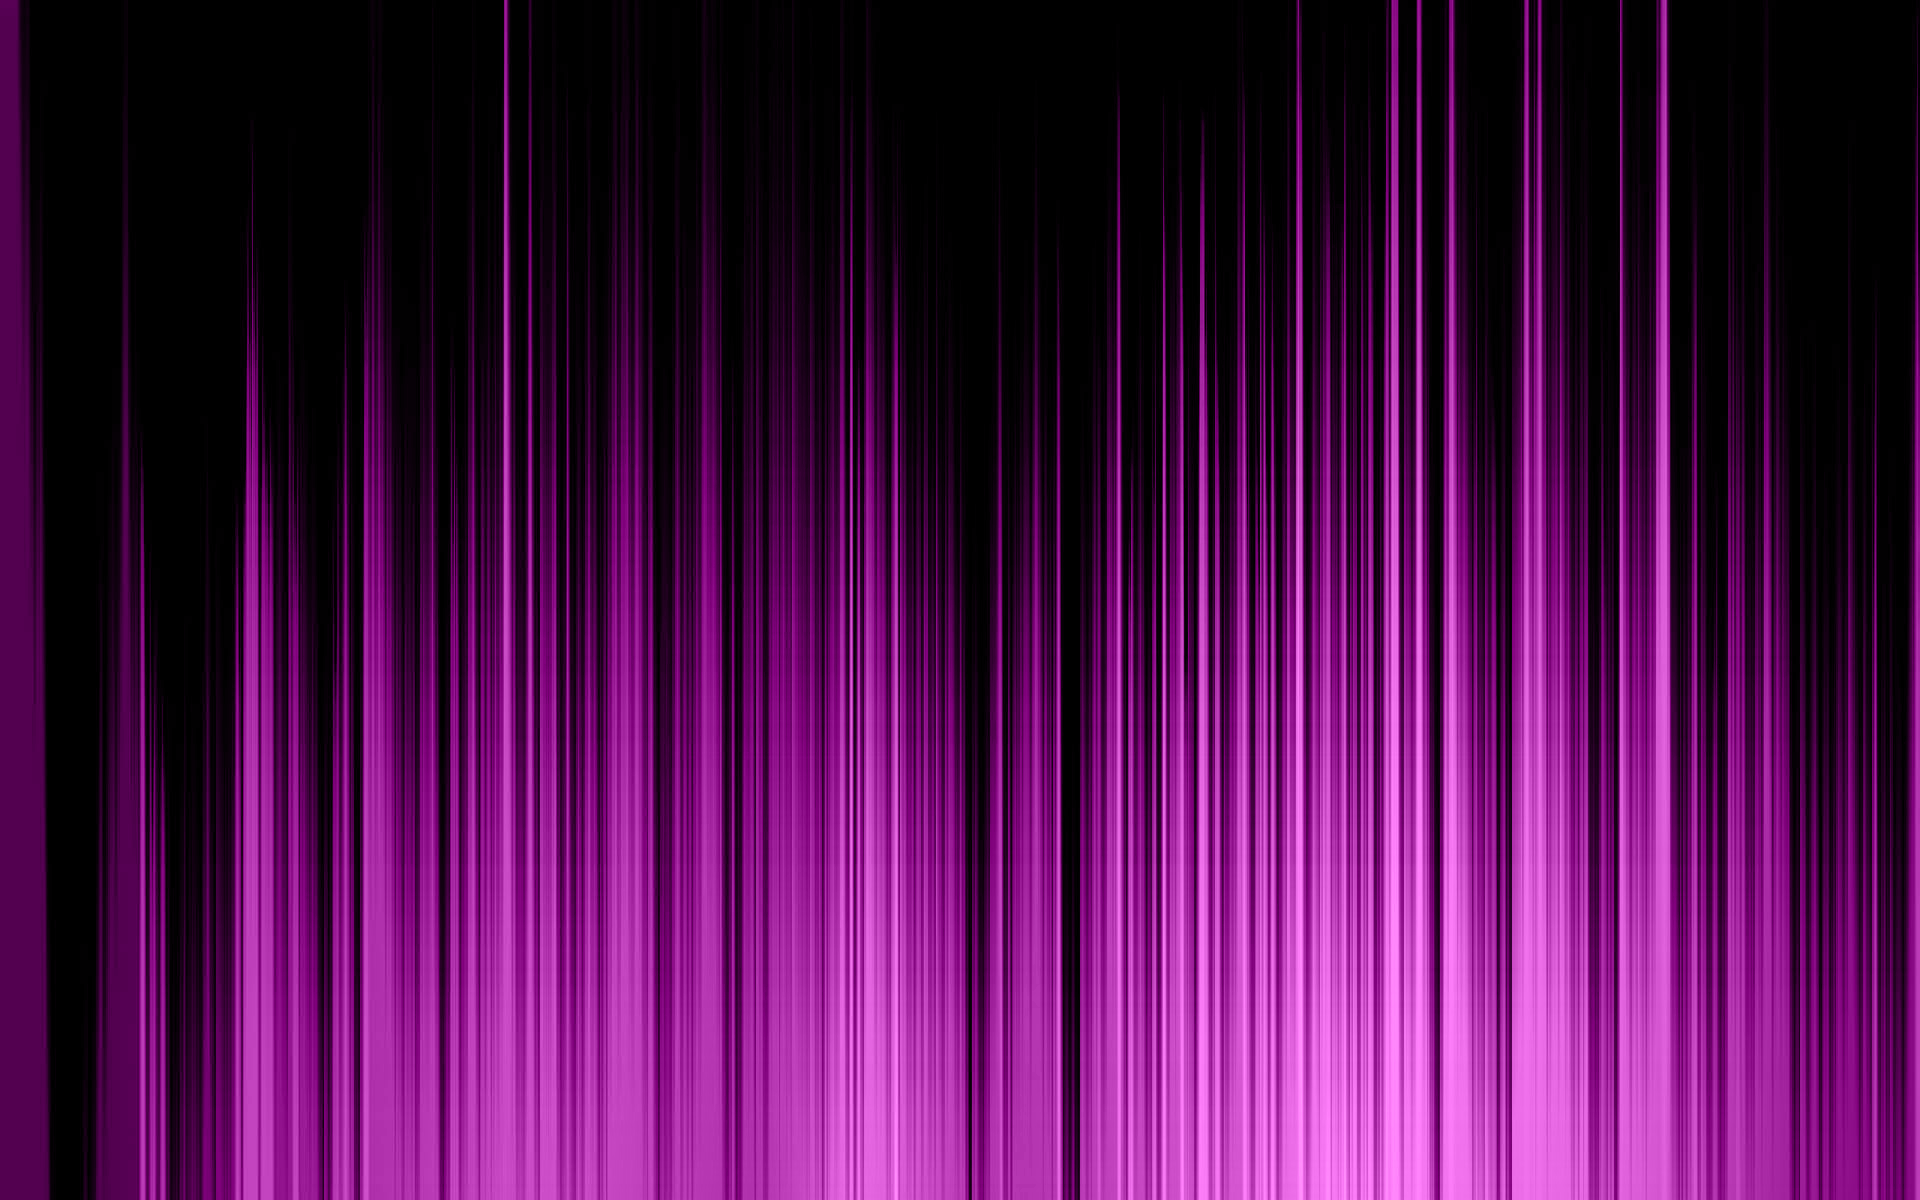 Theatre curtains png - Purple Curtains Background By Themachinesucker Customization Wallpaper